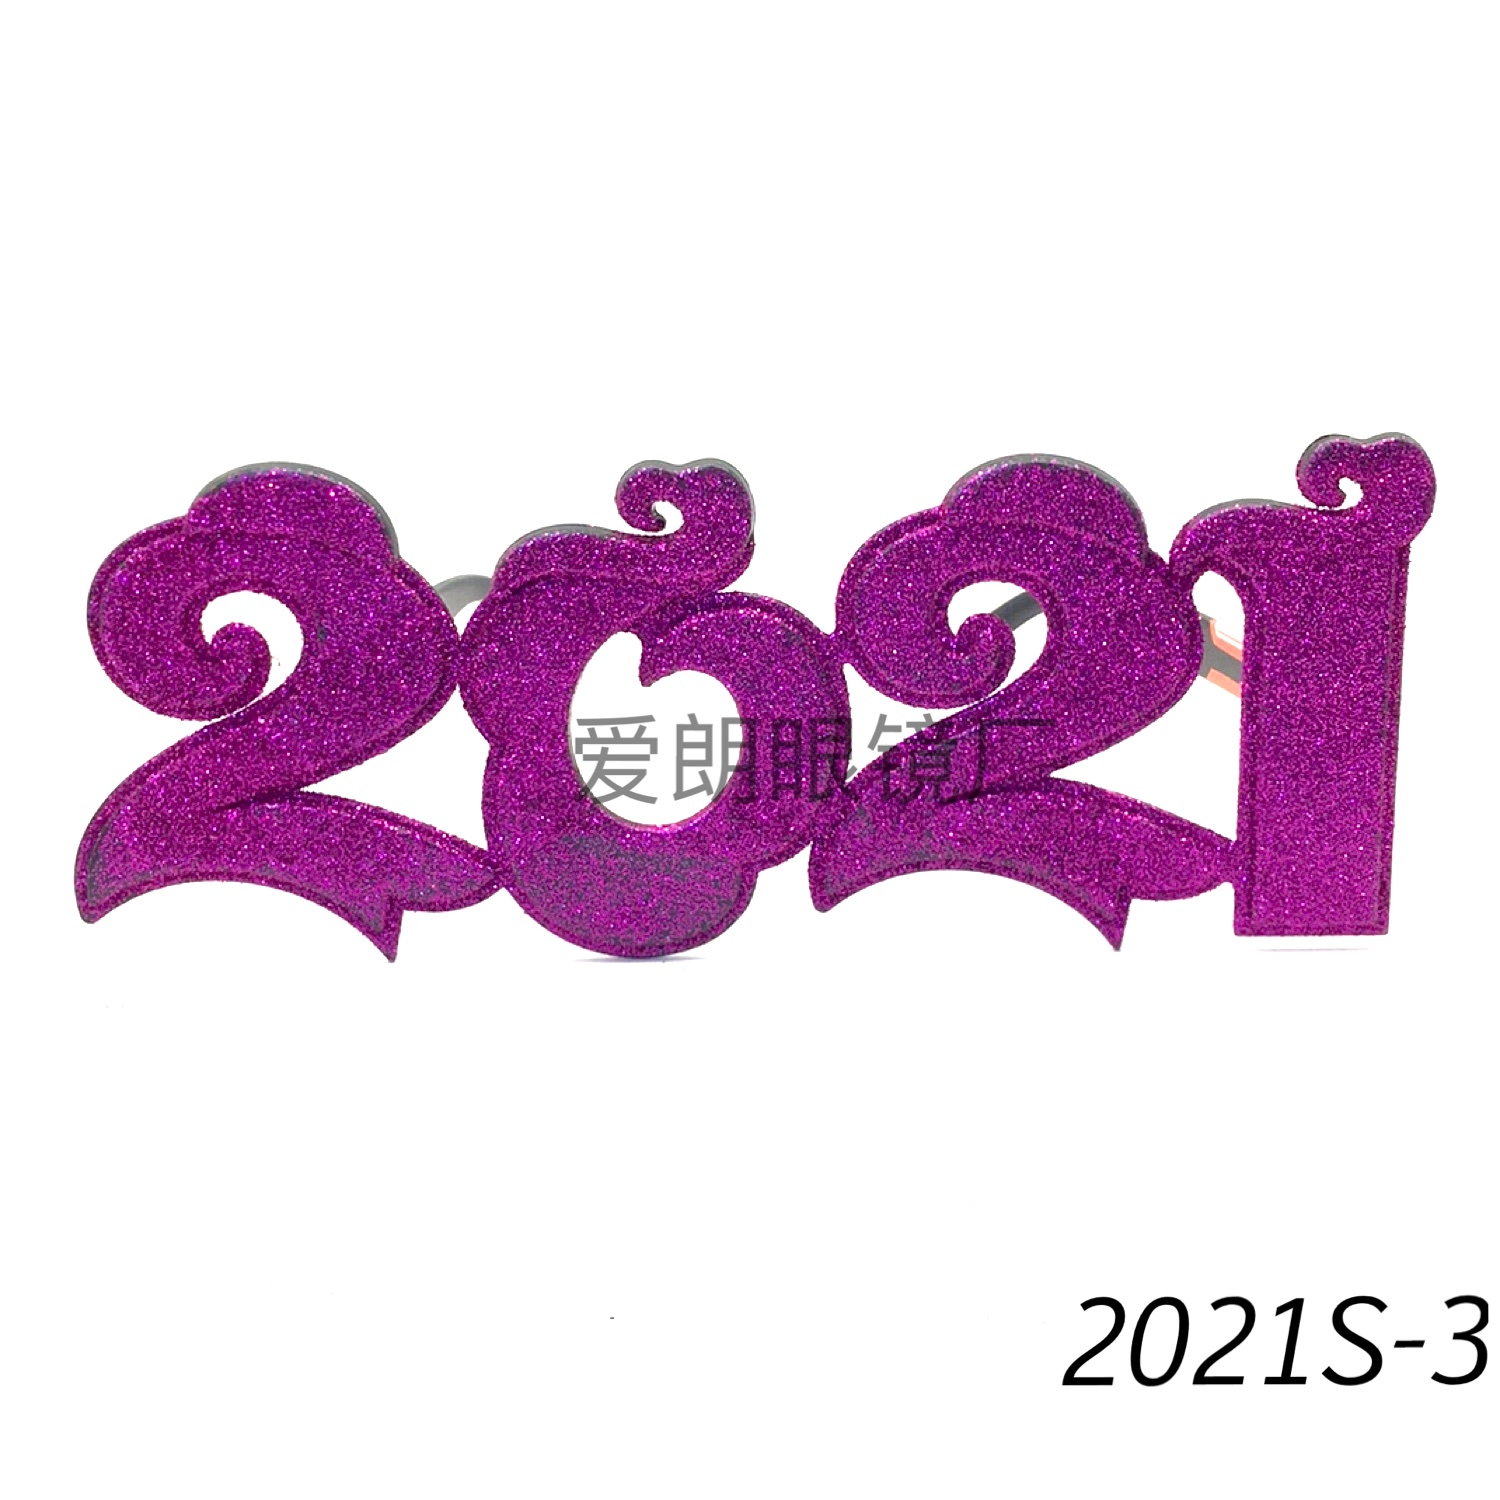 supply new year 2021 wacky spectacles to celebrate funny personality decorations party supplies yiwugo com